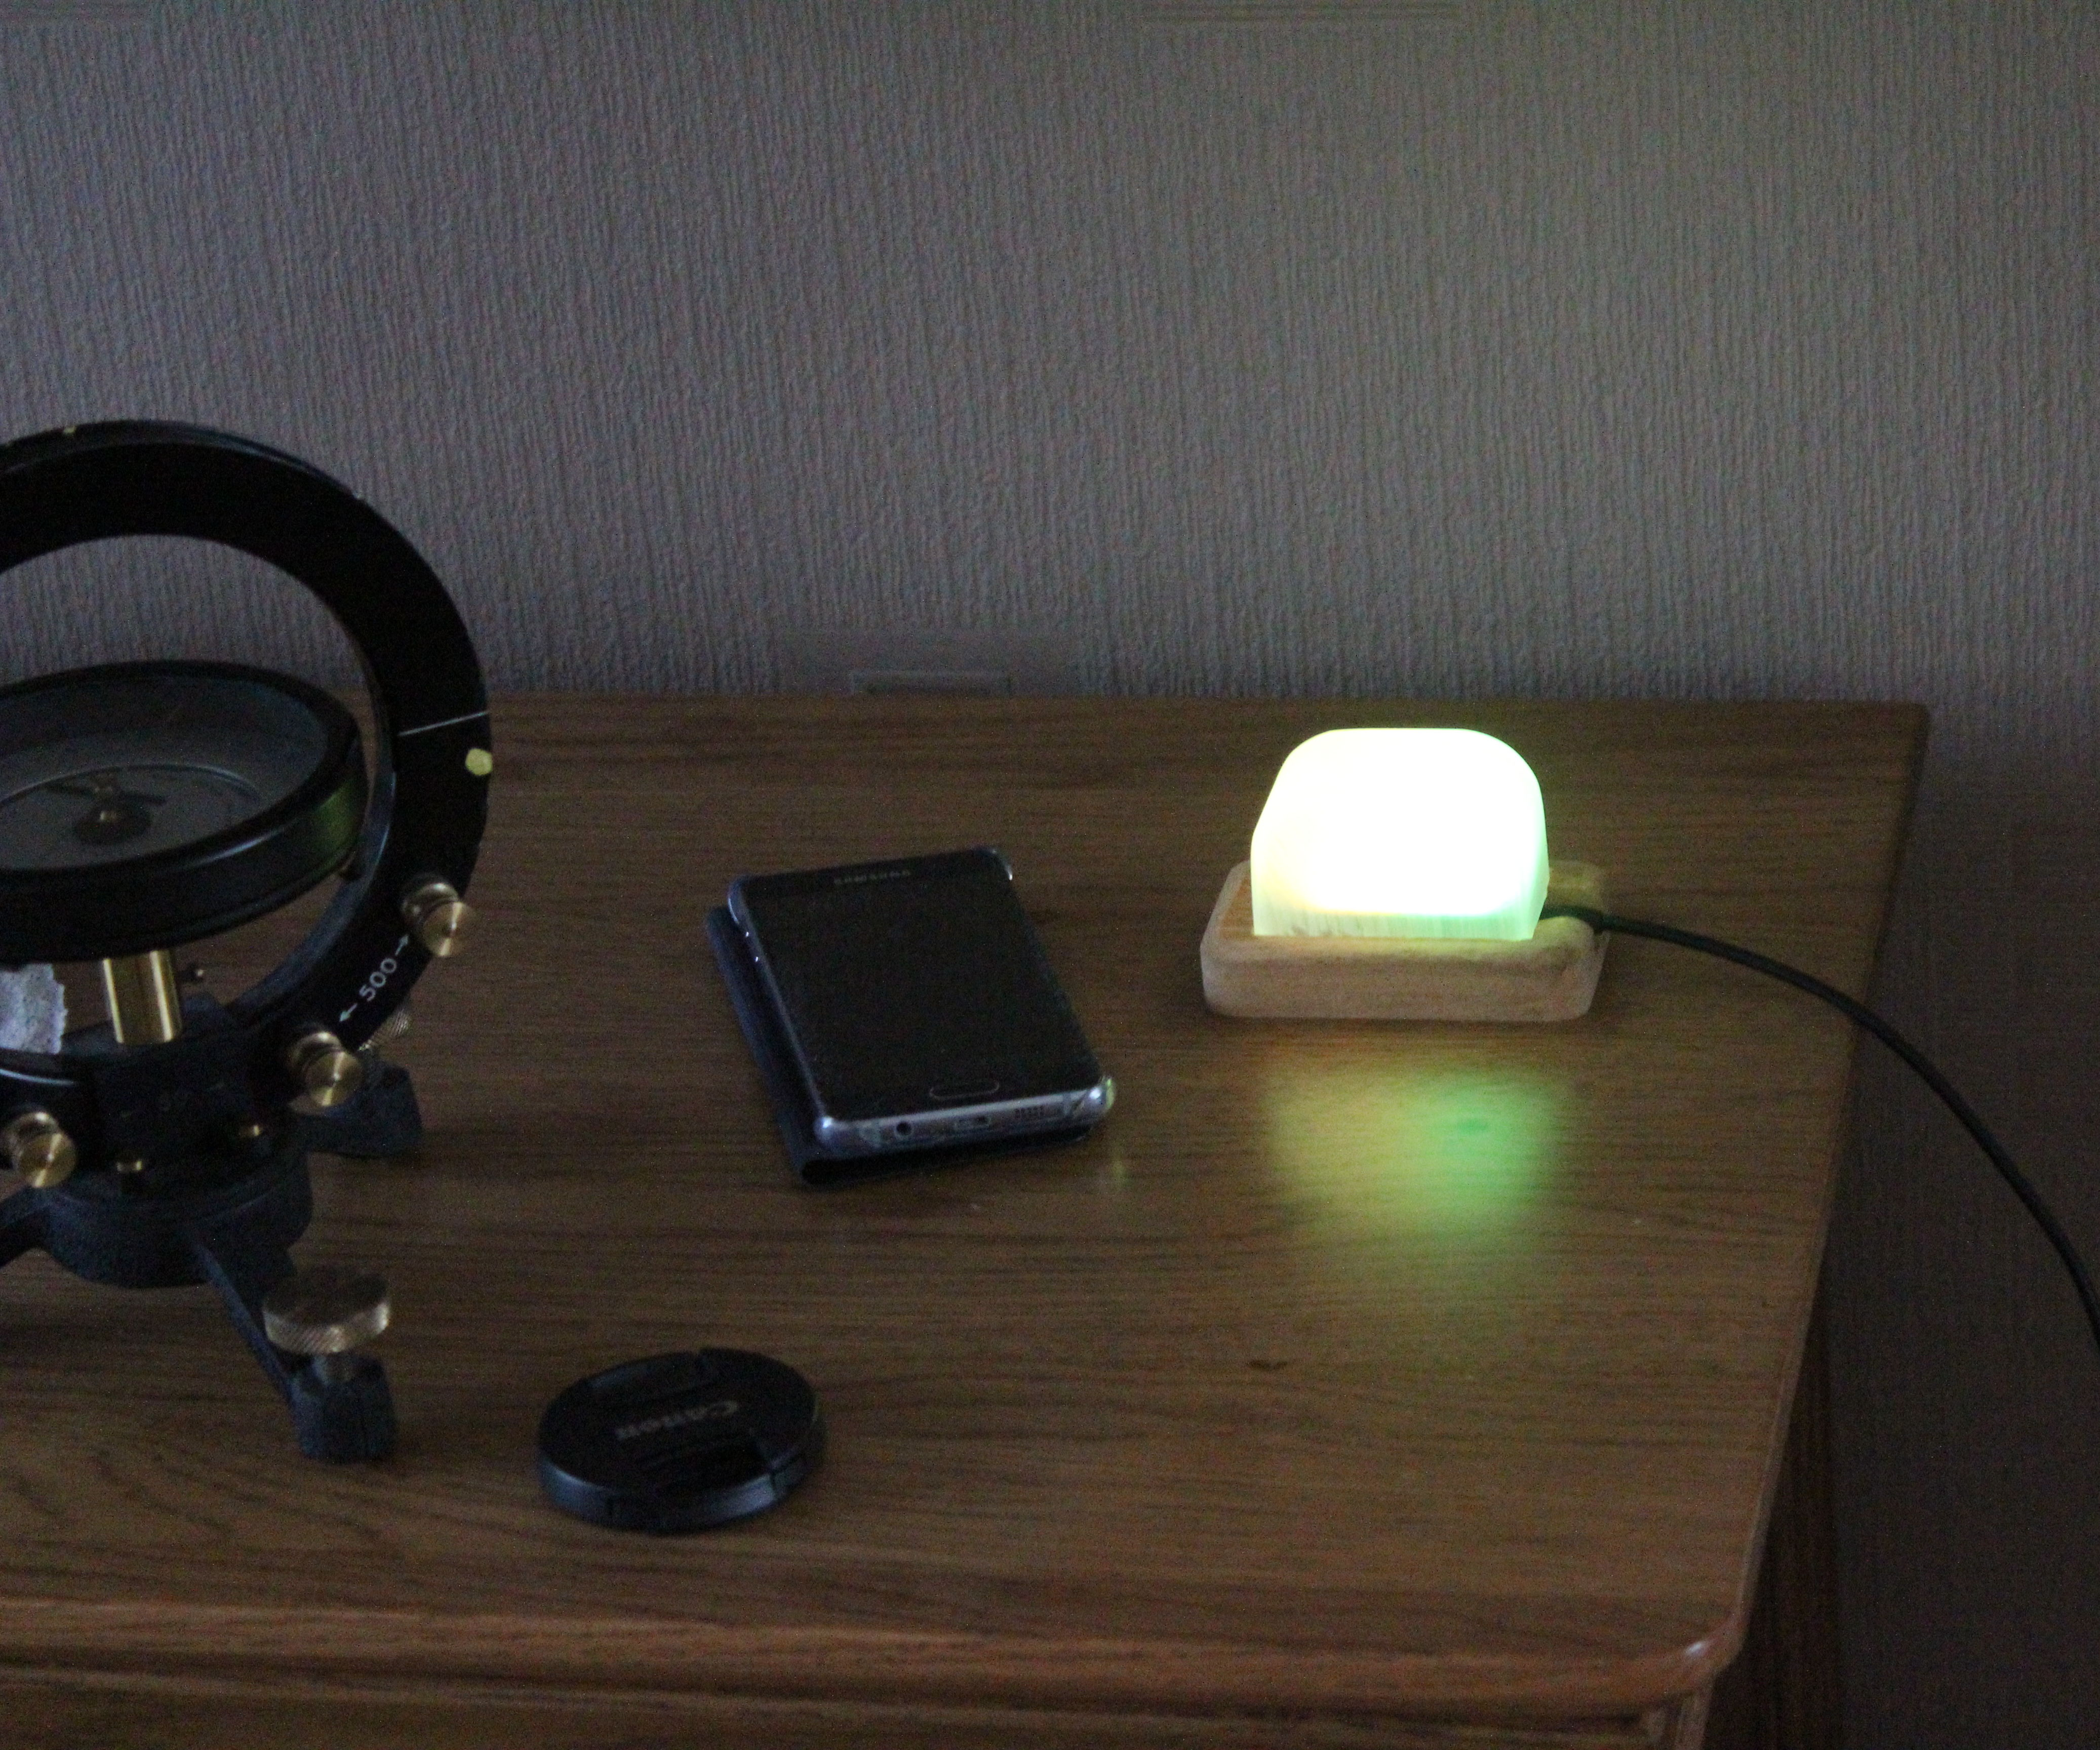 IOT BMI Indicator and Mood Light Using Feather Huzzah and IFTTT